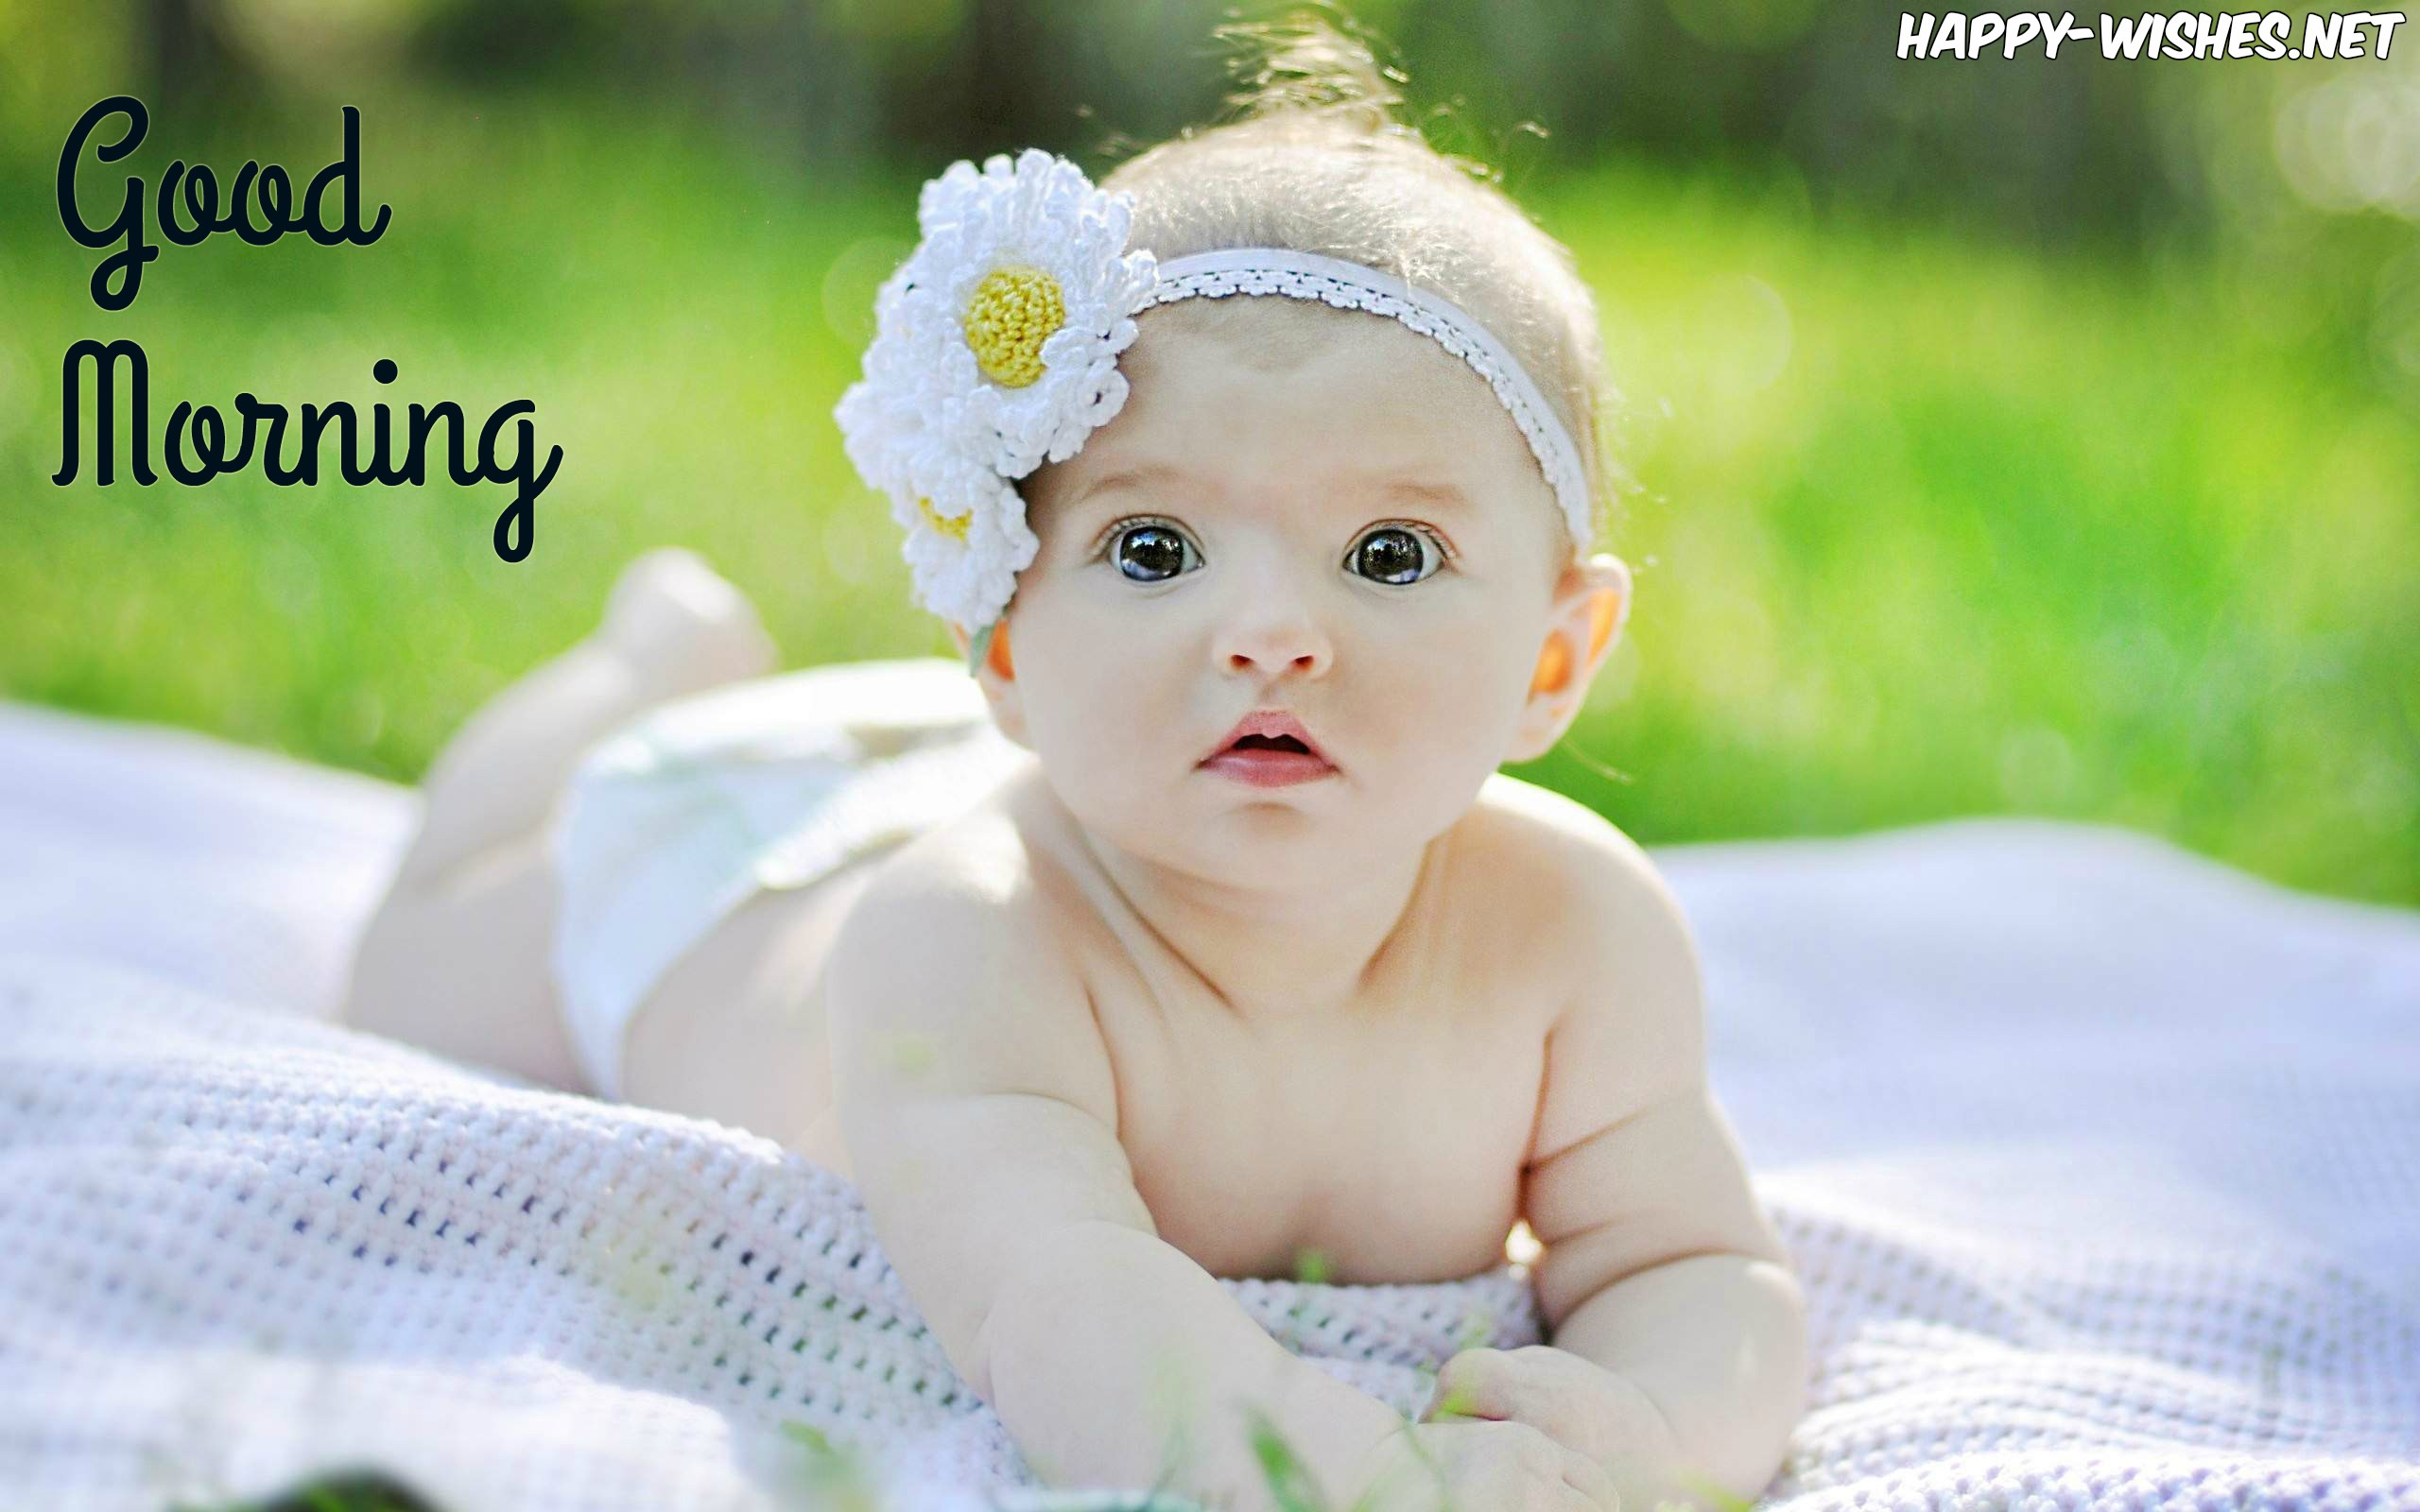 Good morning Baby wishes